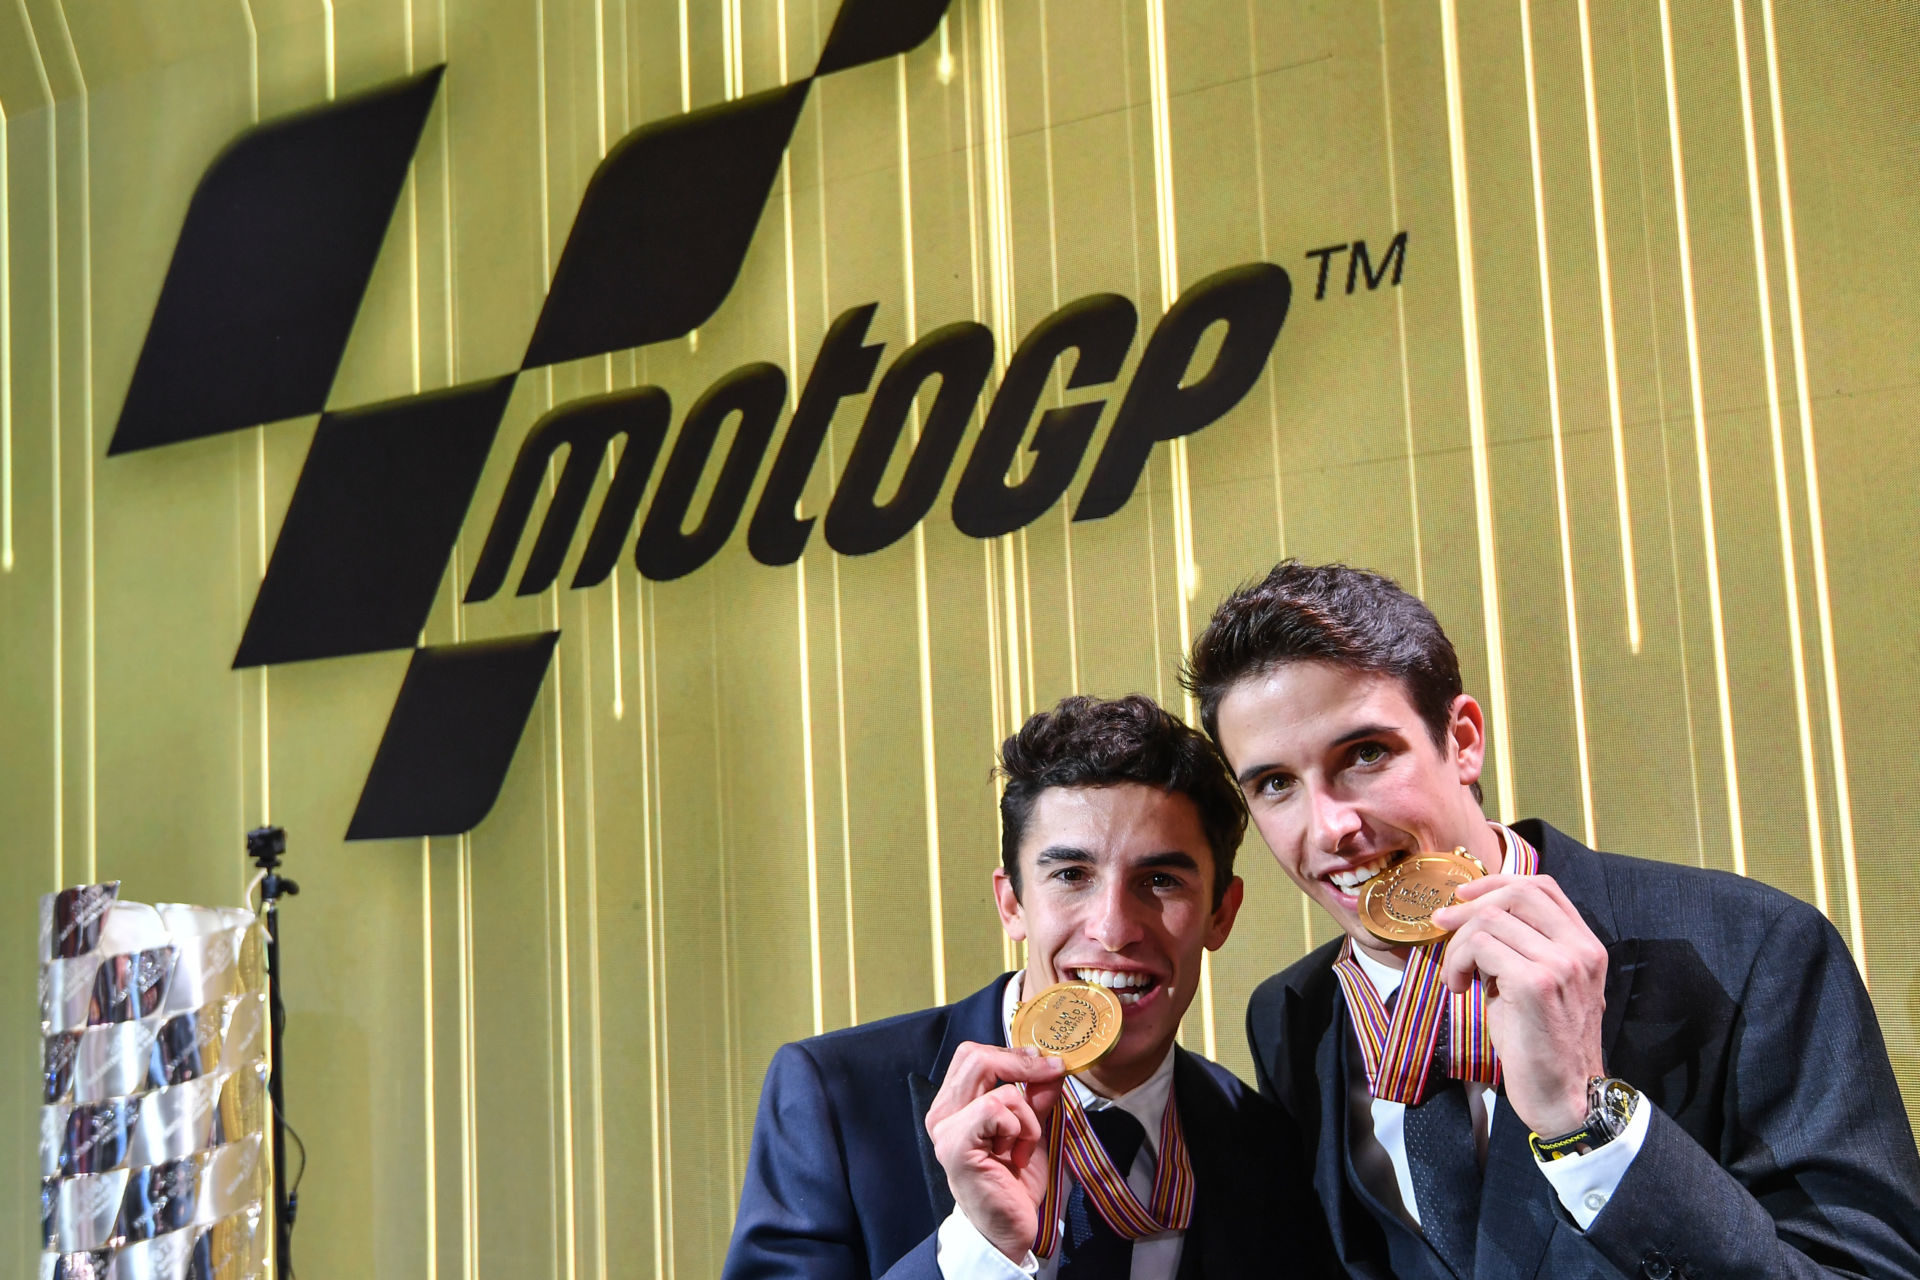 Brothers Marc Marquez (left) and Alex Marquez (right) will be teammates at Repsol Honda for the 2020 MotoGP World Championship. Photo courtesy of Dorna/www.motogp.com.